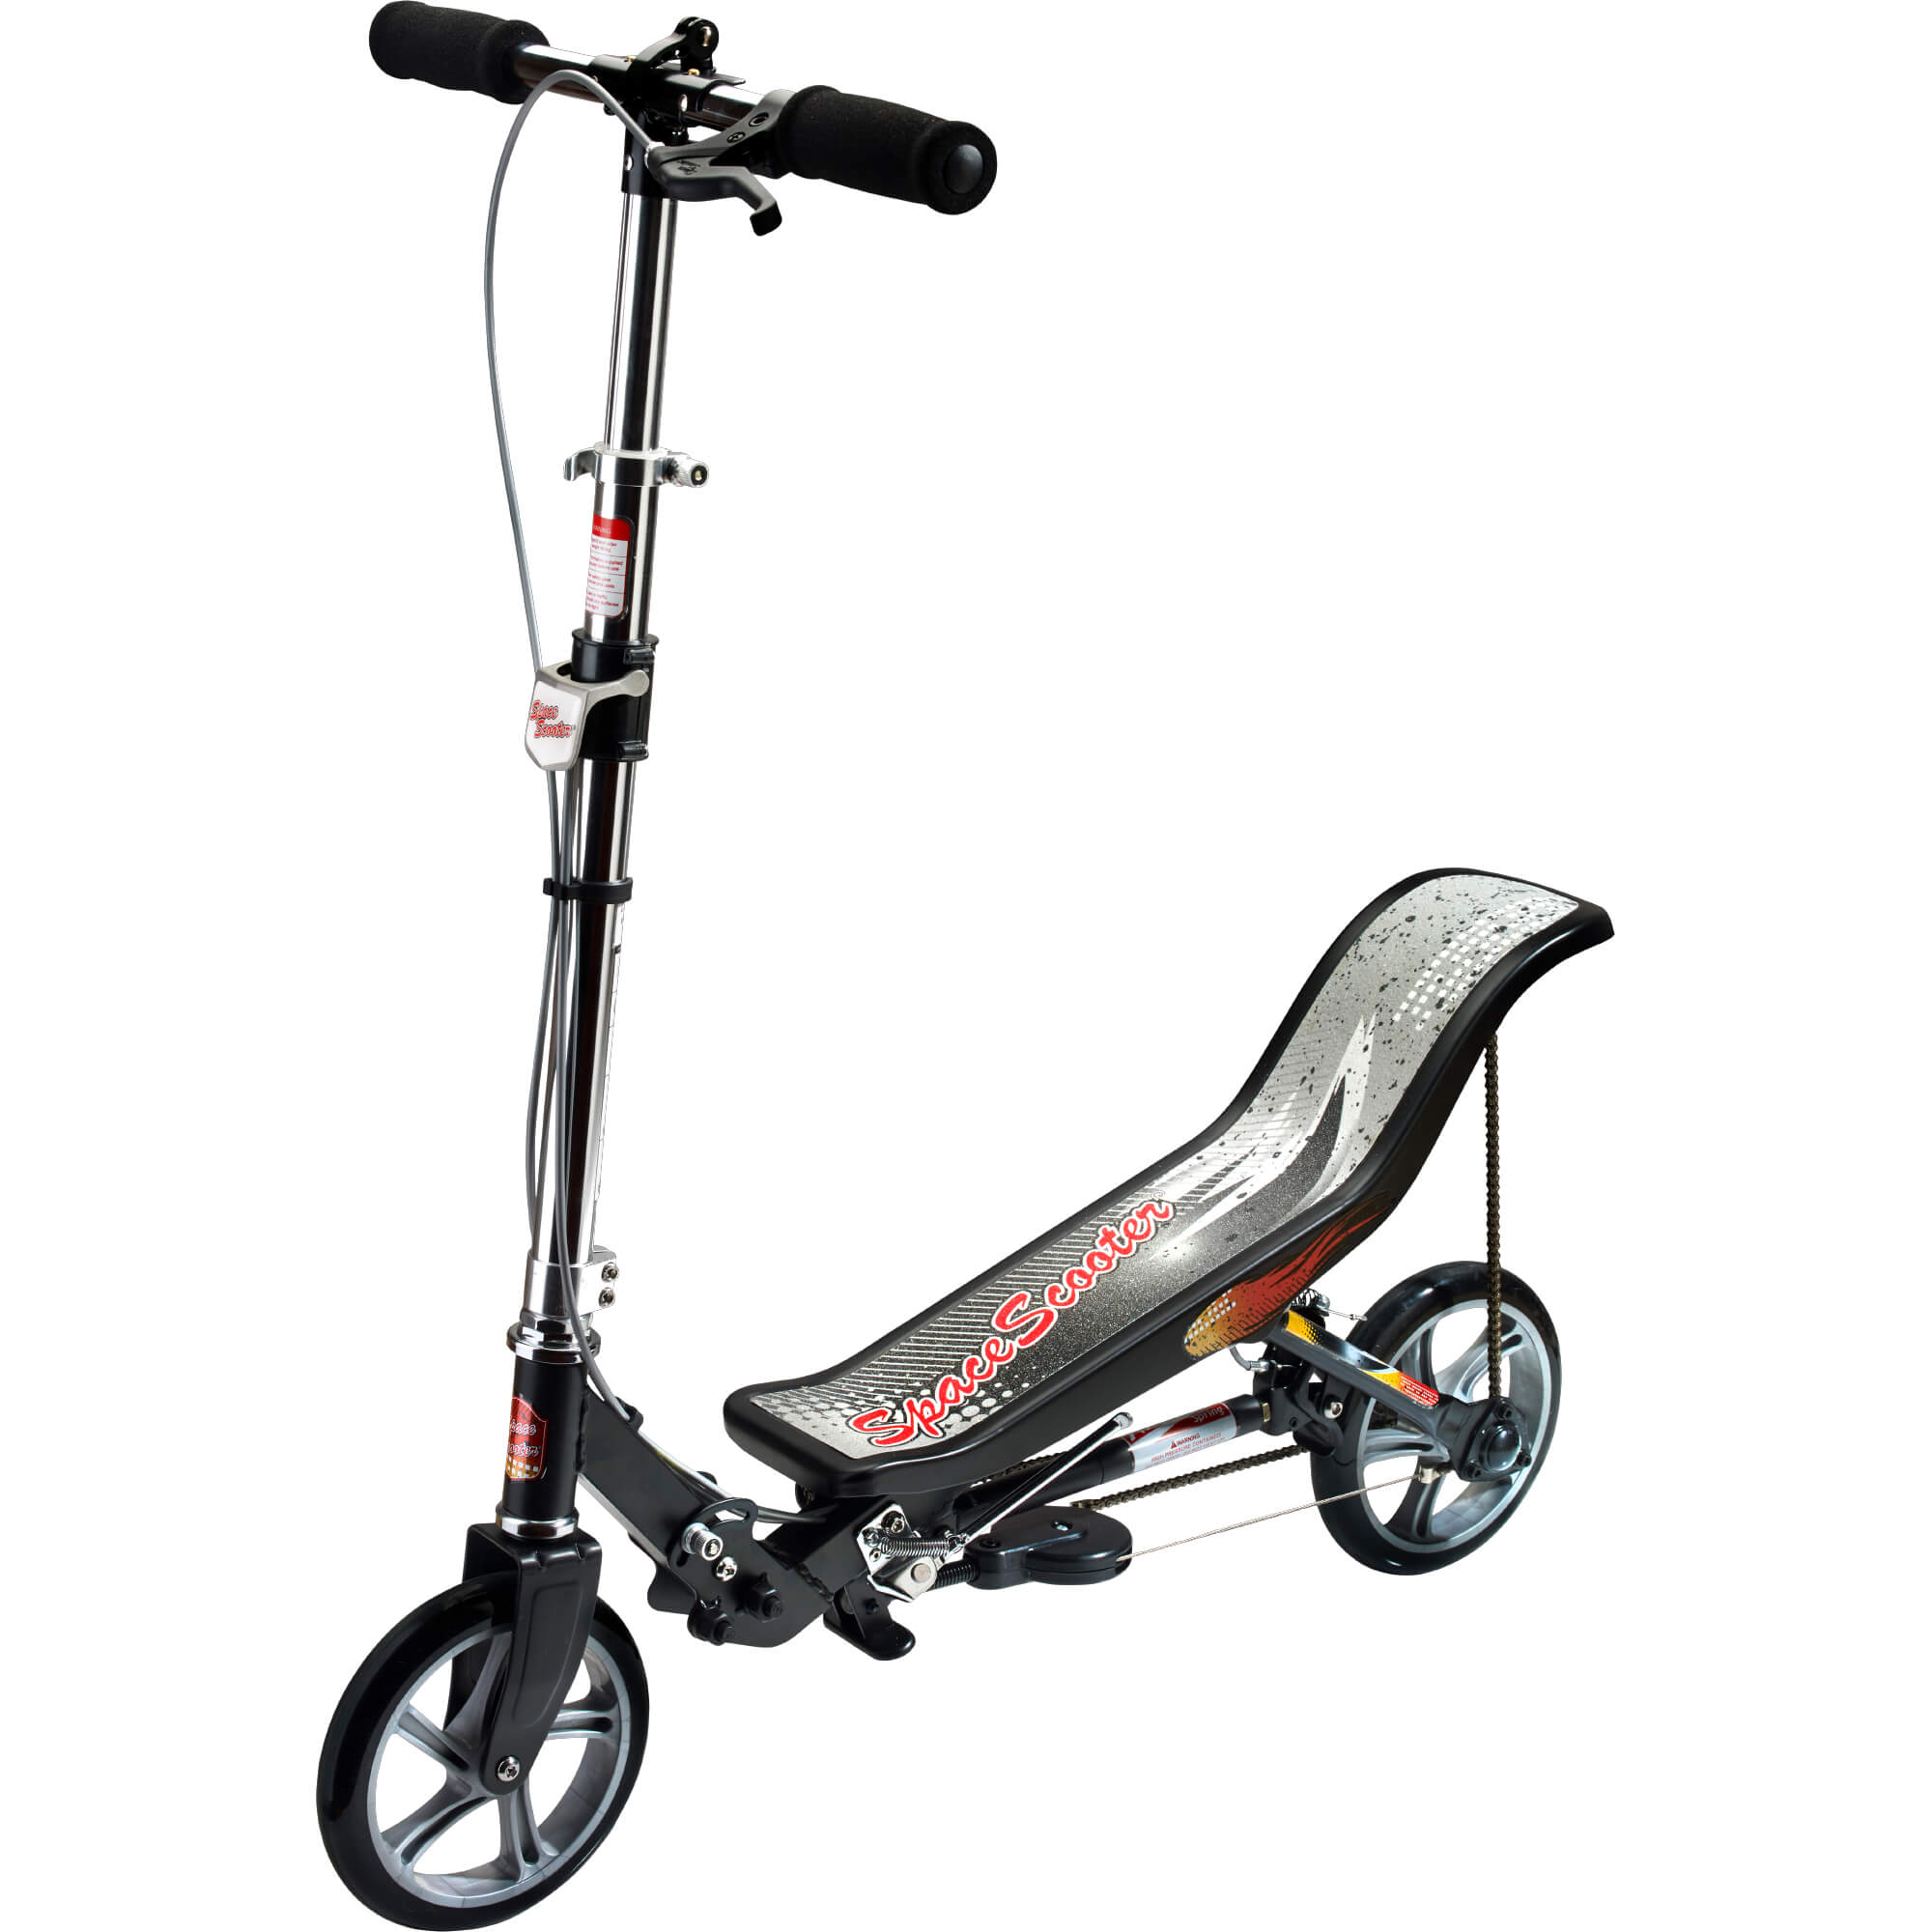 SCOOTER X580